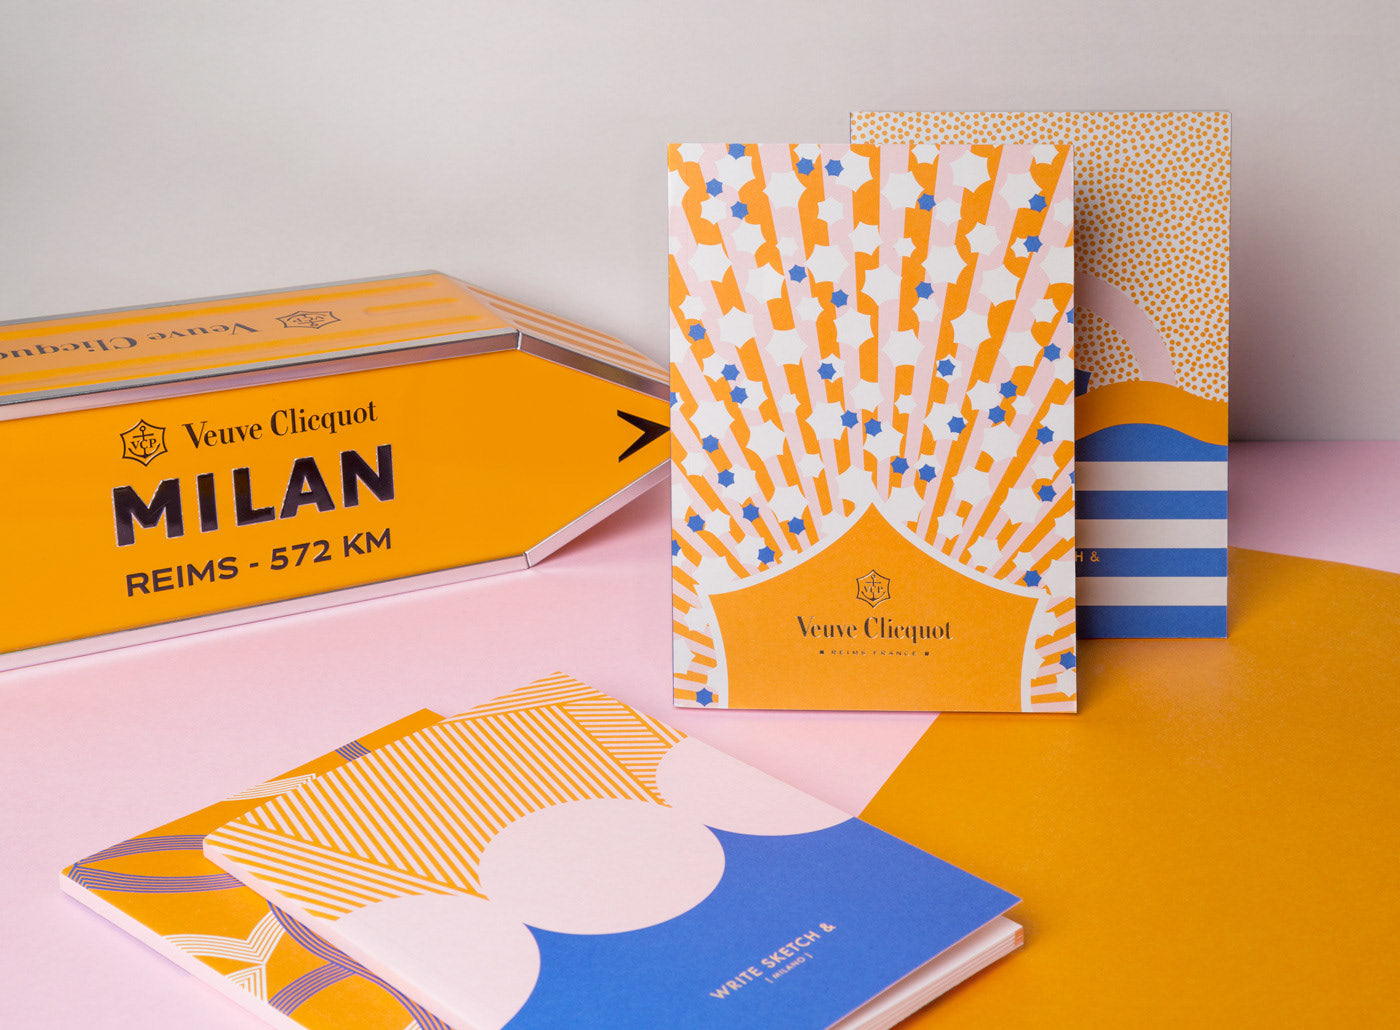 veuve clicquot brand notebook design